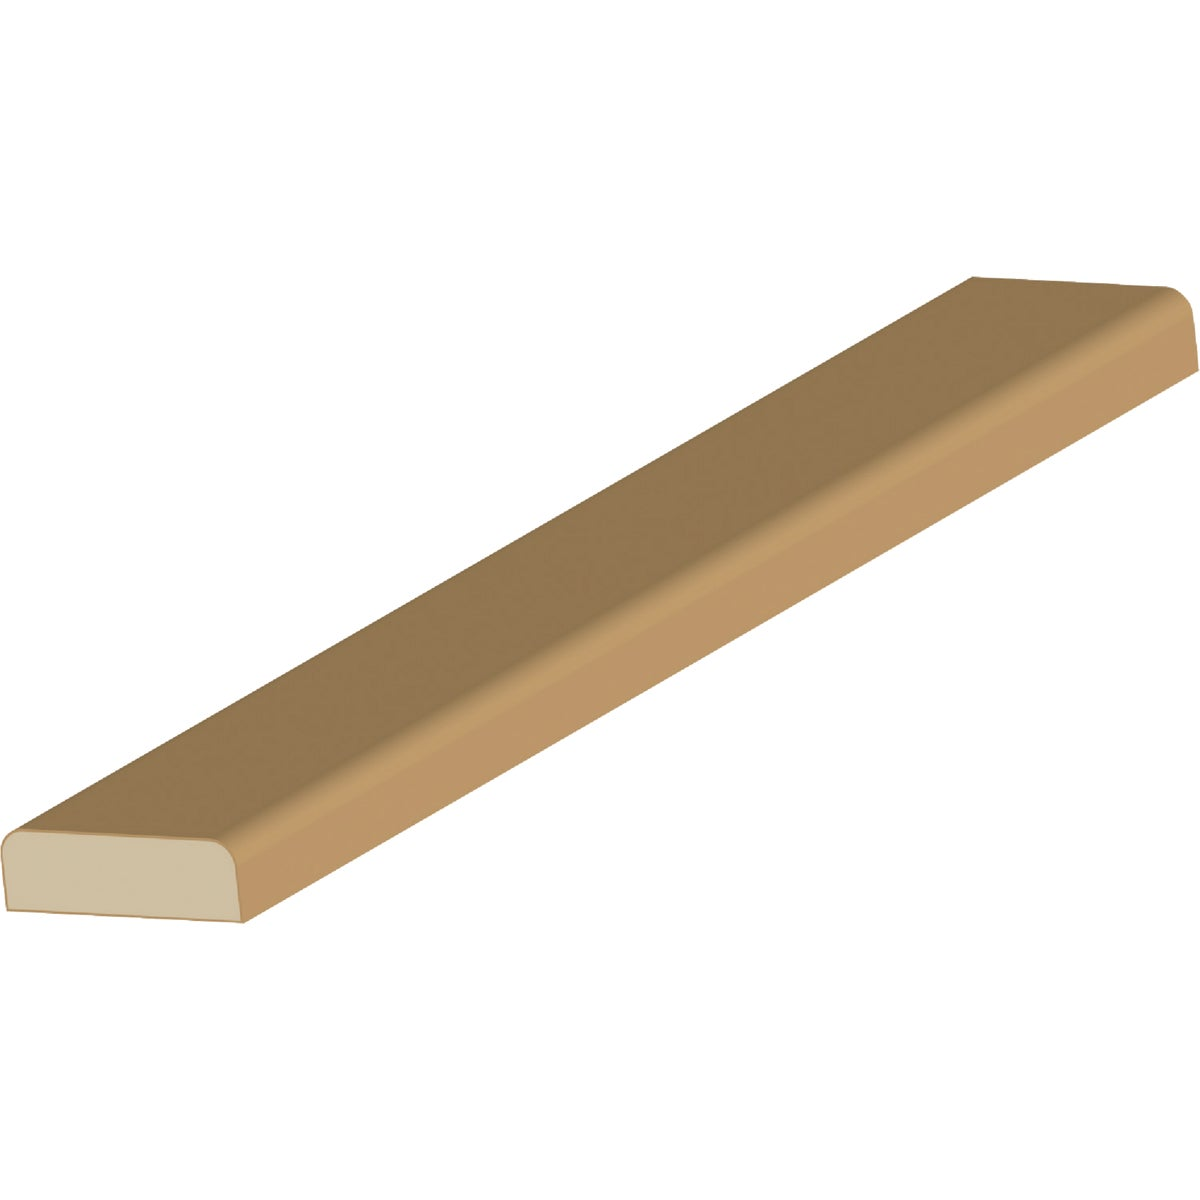 LWM876 7' FJB DOOR STOP - L87670FJB by Jim White Millwork